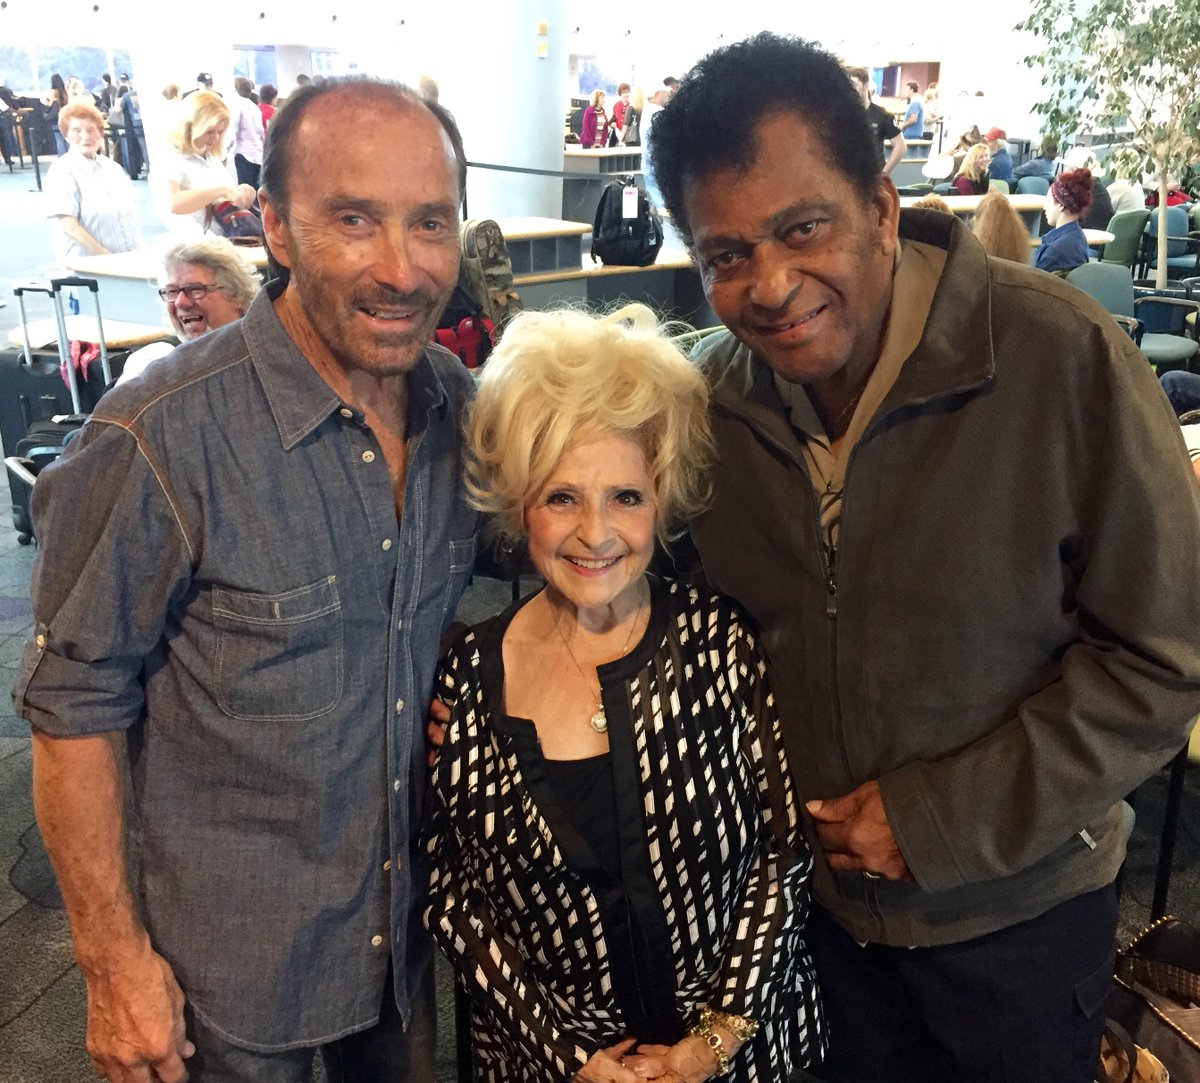 Charley Pride was a dear friend & truly one of the sweetest men in the music business. I was privileged to be his opening act when I first came to town.